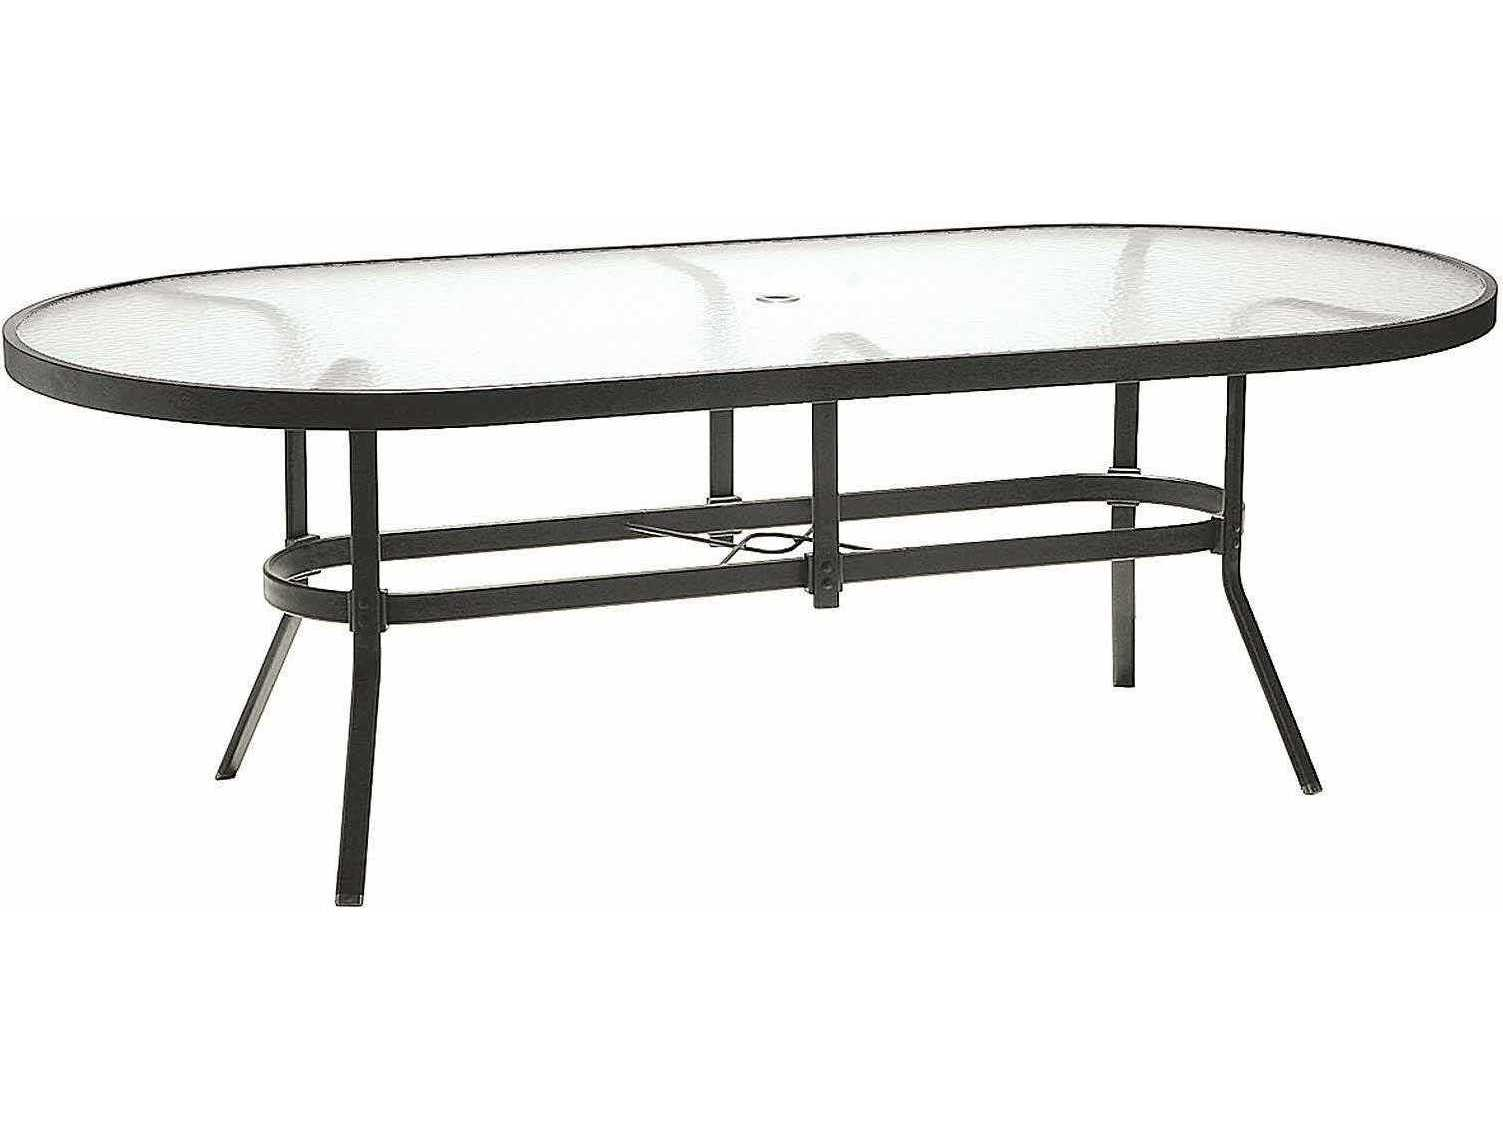 Winston obscure glass aluminum 84 39 39 x 42 39 39 oval dining for White metal outdoor dining table